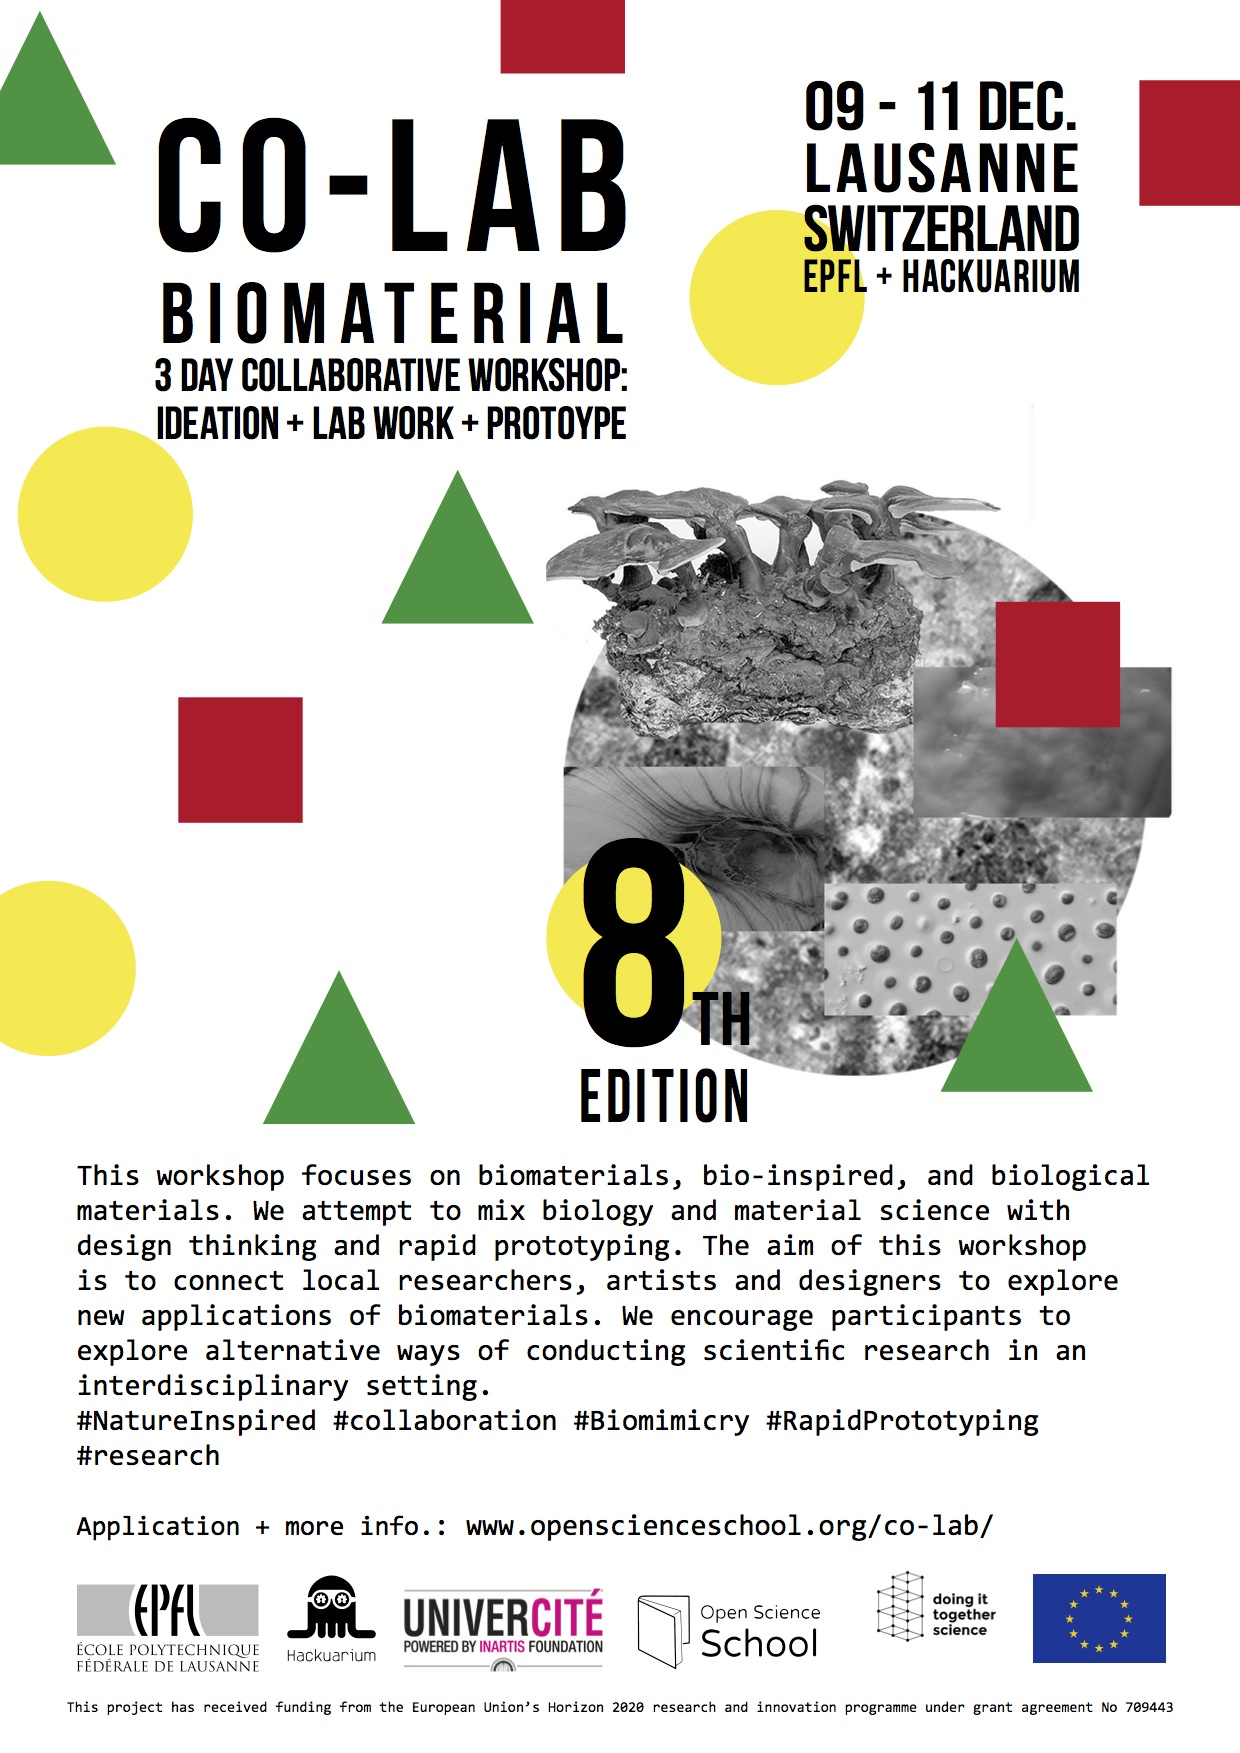 17-11-version-distribution-colab-biomaterial-epfl-poster